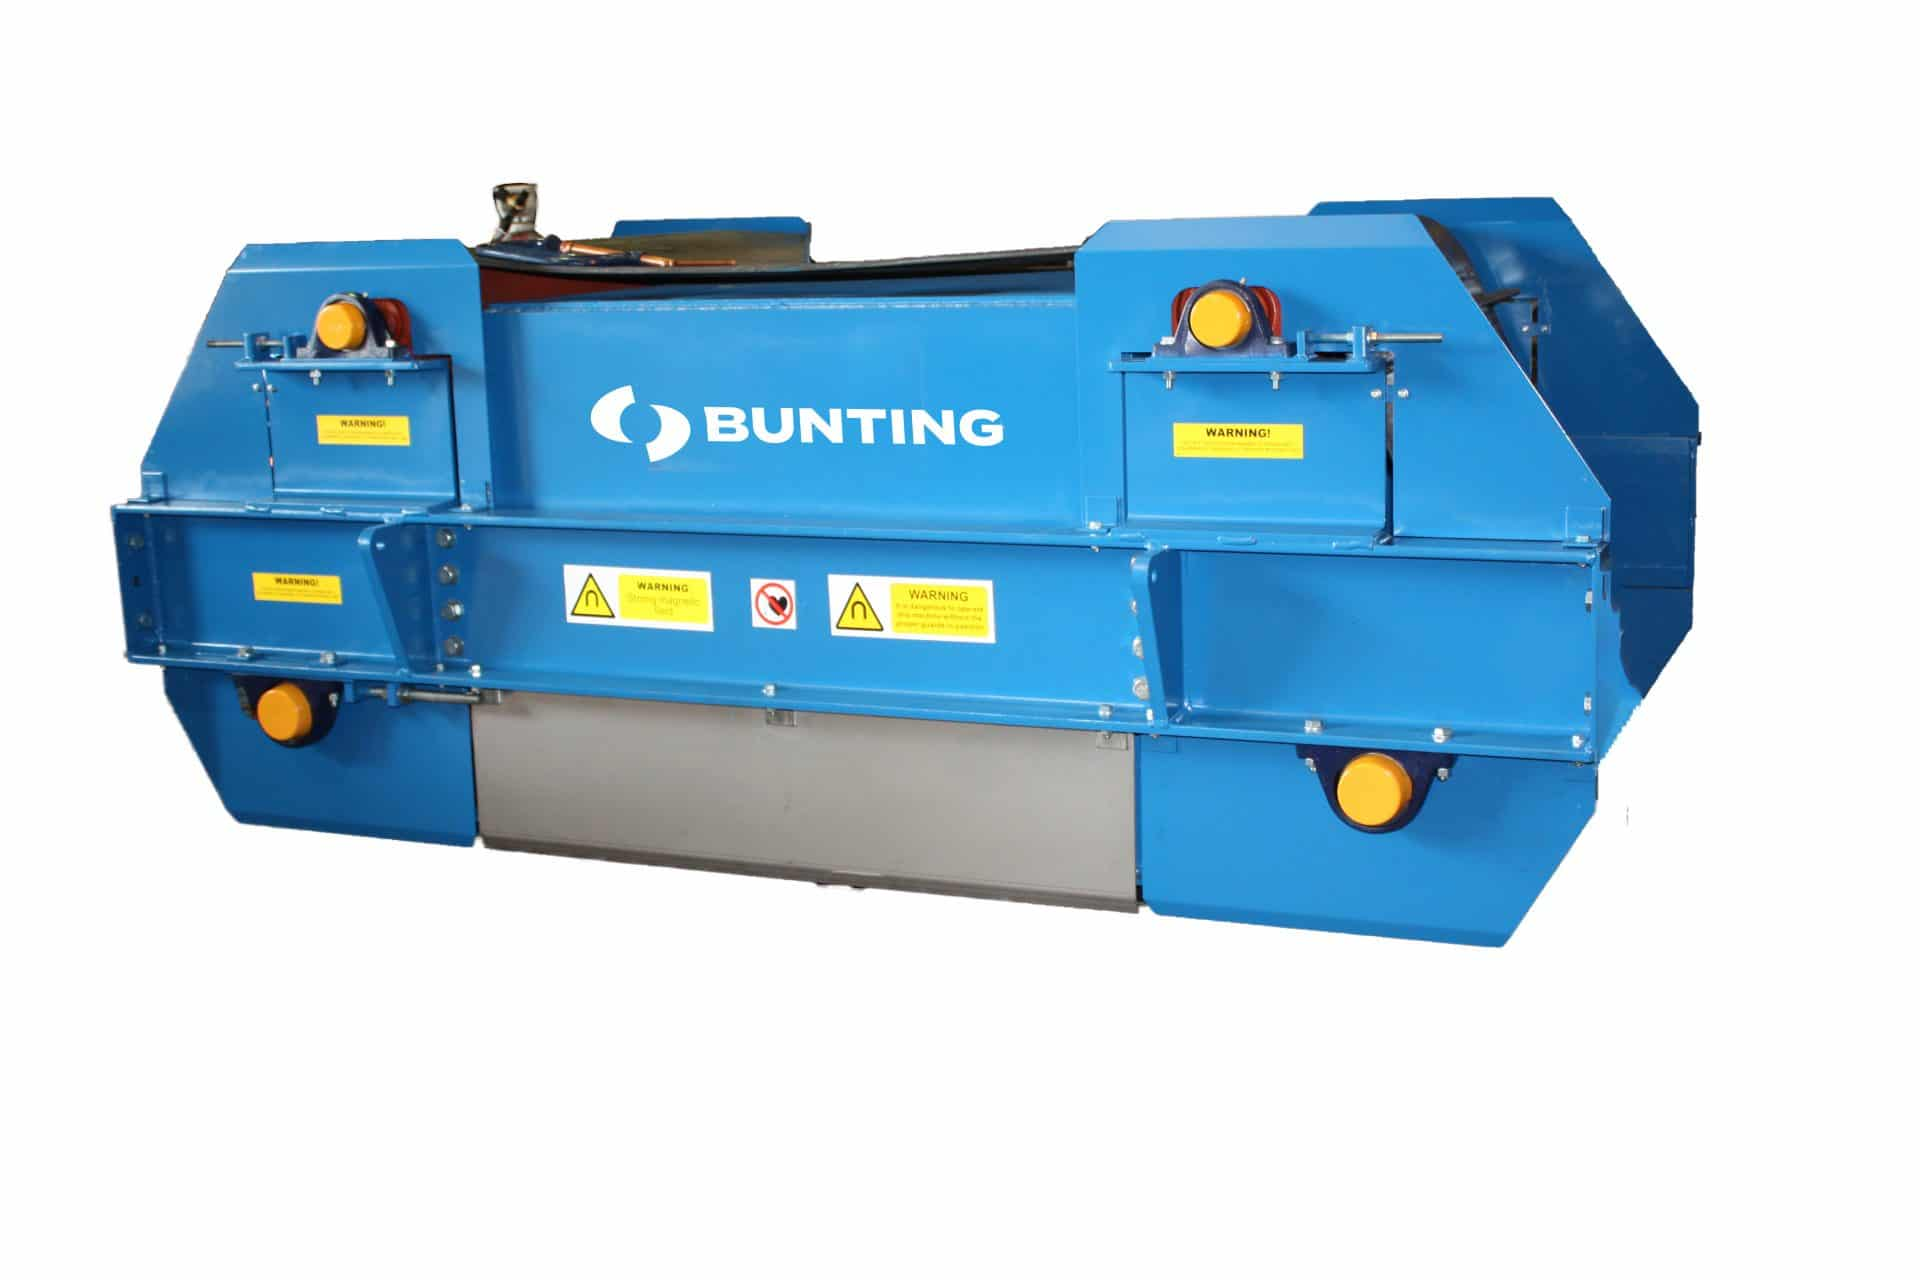 Bunting ACW- Air Cooled Electro Overband